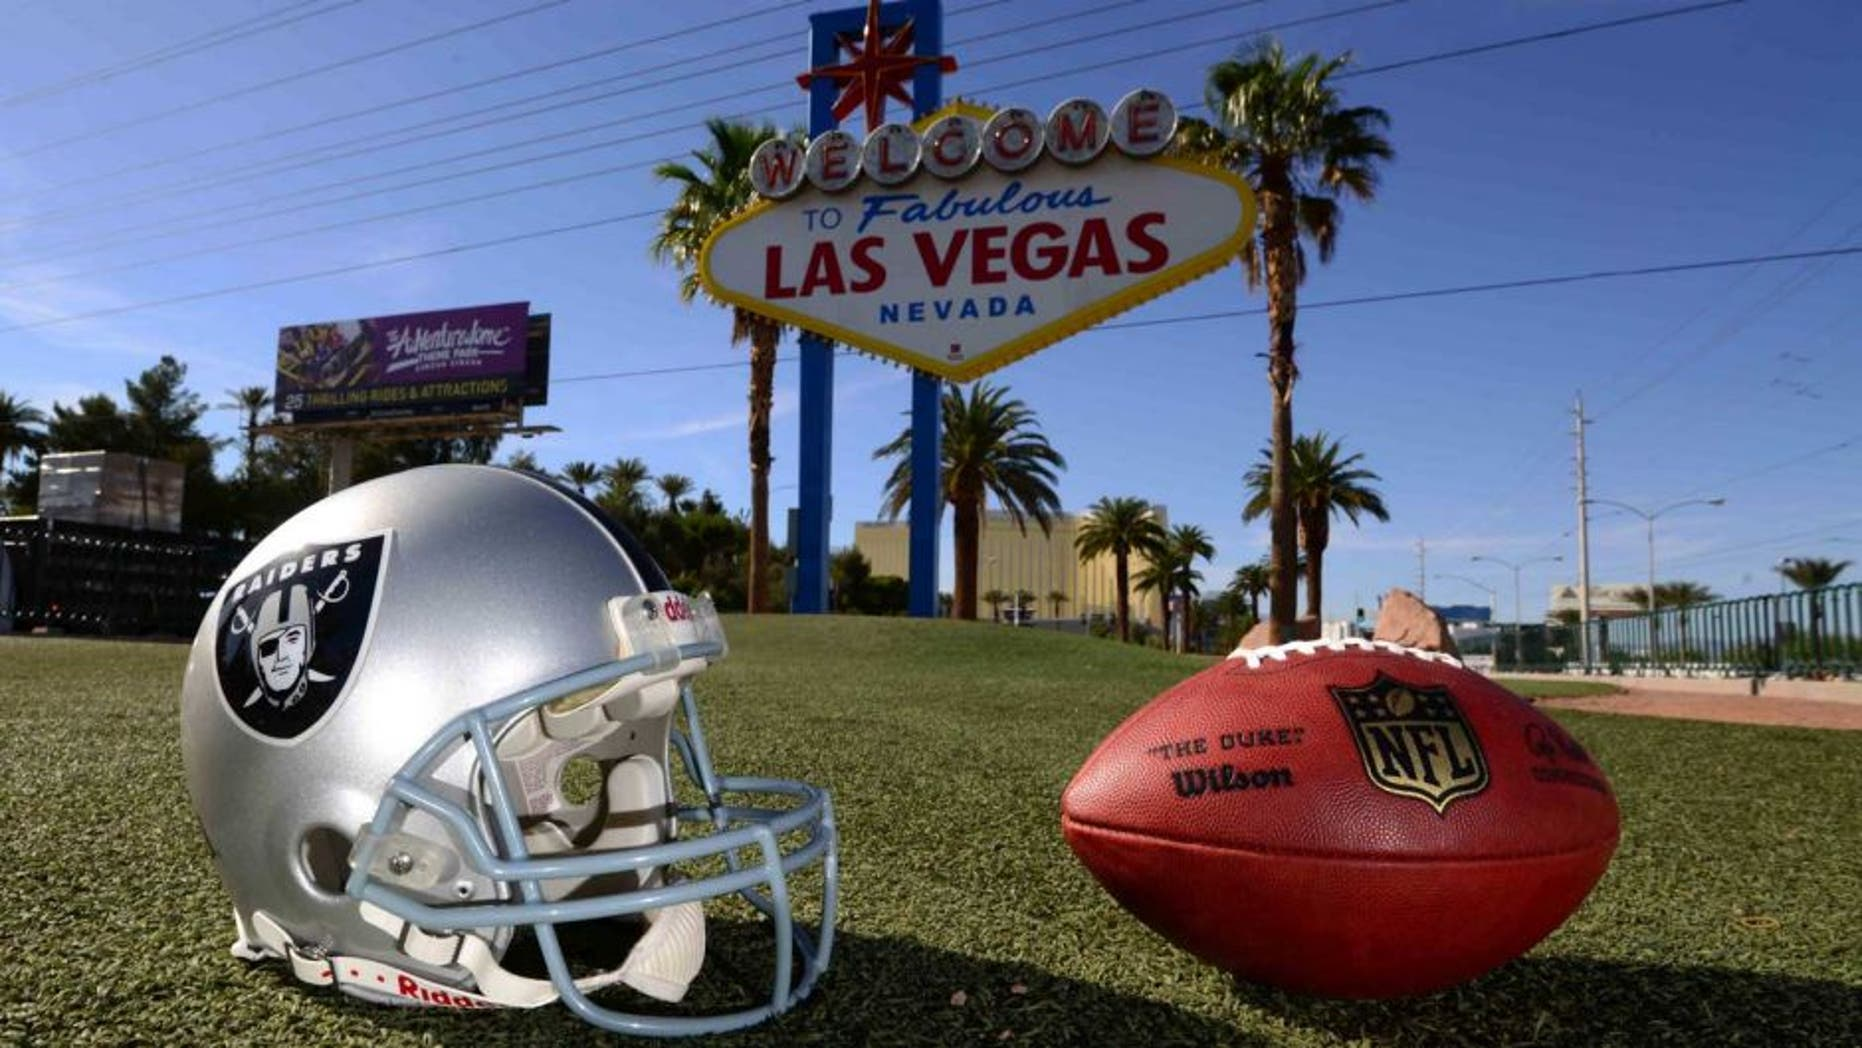 """May 11, 2016; Las Vegas, NV, USA; General view of Oakland Raiders helmet and NFL Wilson Duke football at the """"Welcome to Fabulous Las Vegas"""" sign on the Las Vegas strip on Las Vegas Blvd. Raiders owner Mark Davis (not pictured) has pledged $500 million toward building a 65,000-seat domed stadium in Las Vegas at a total cost of $1.4 billion. NFL commissioner Roger Goodell (not pictured) said Davis can explore his options in Las Vegas but would require 24 of 32 owners to approve the move. Mandatory Credit: Kirby Lee-USA TODAY Sports"""